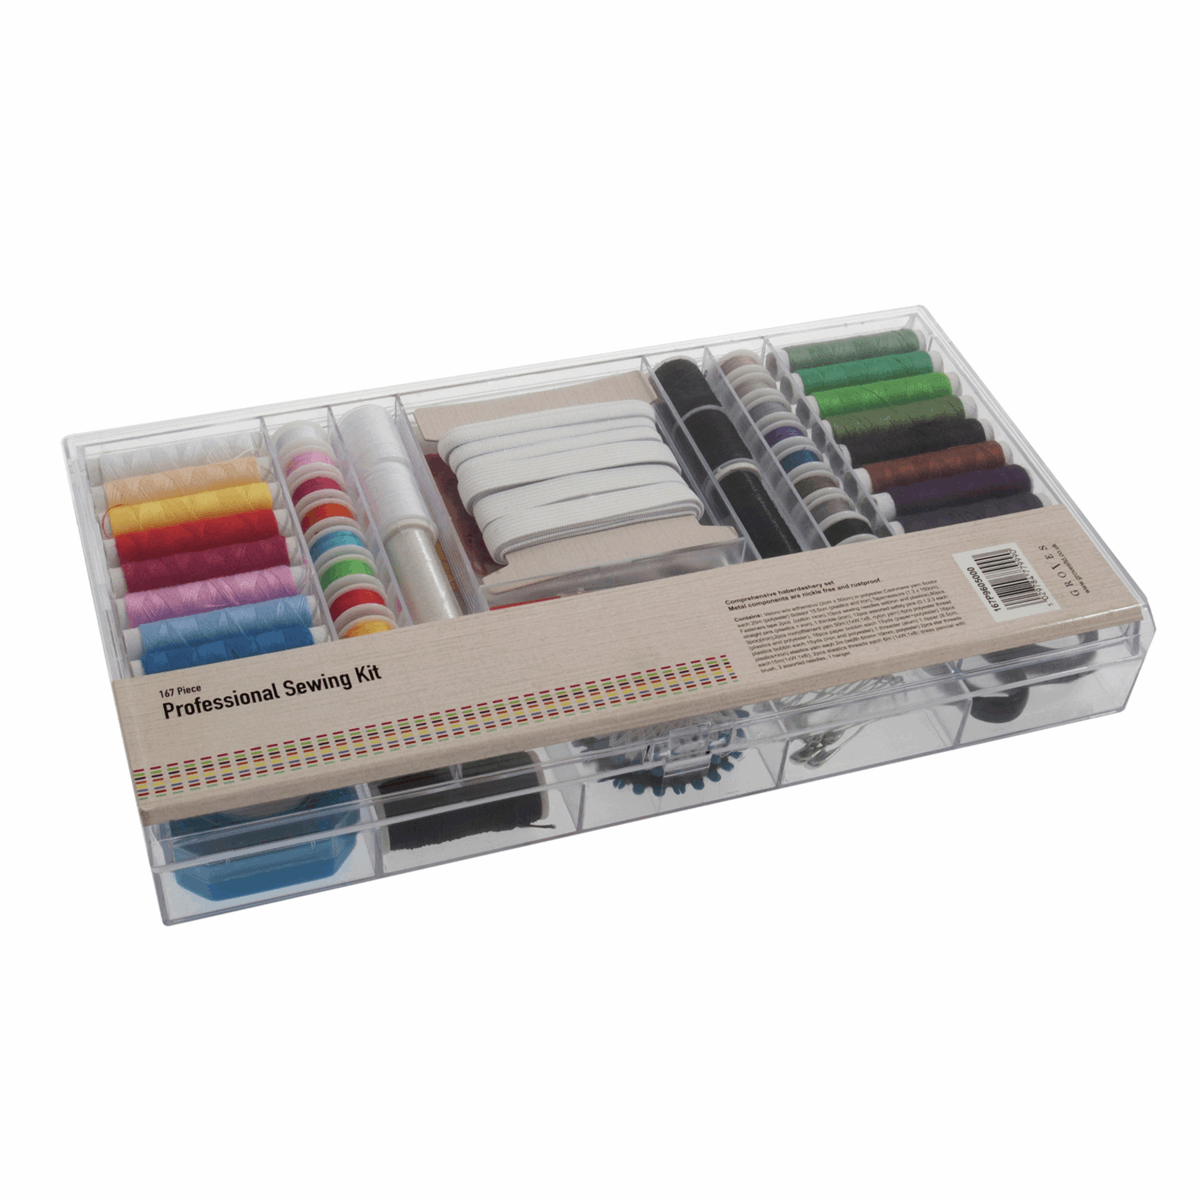 Picture of Professional Sewing Kit: 167 Piece